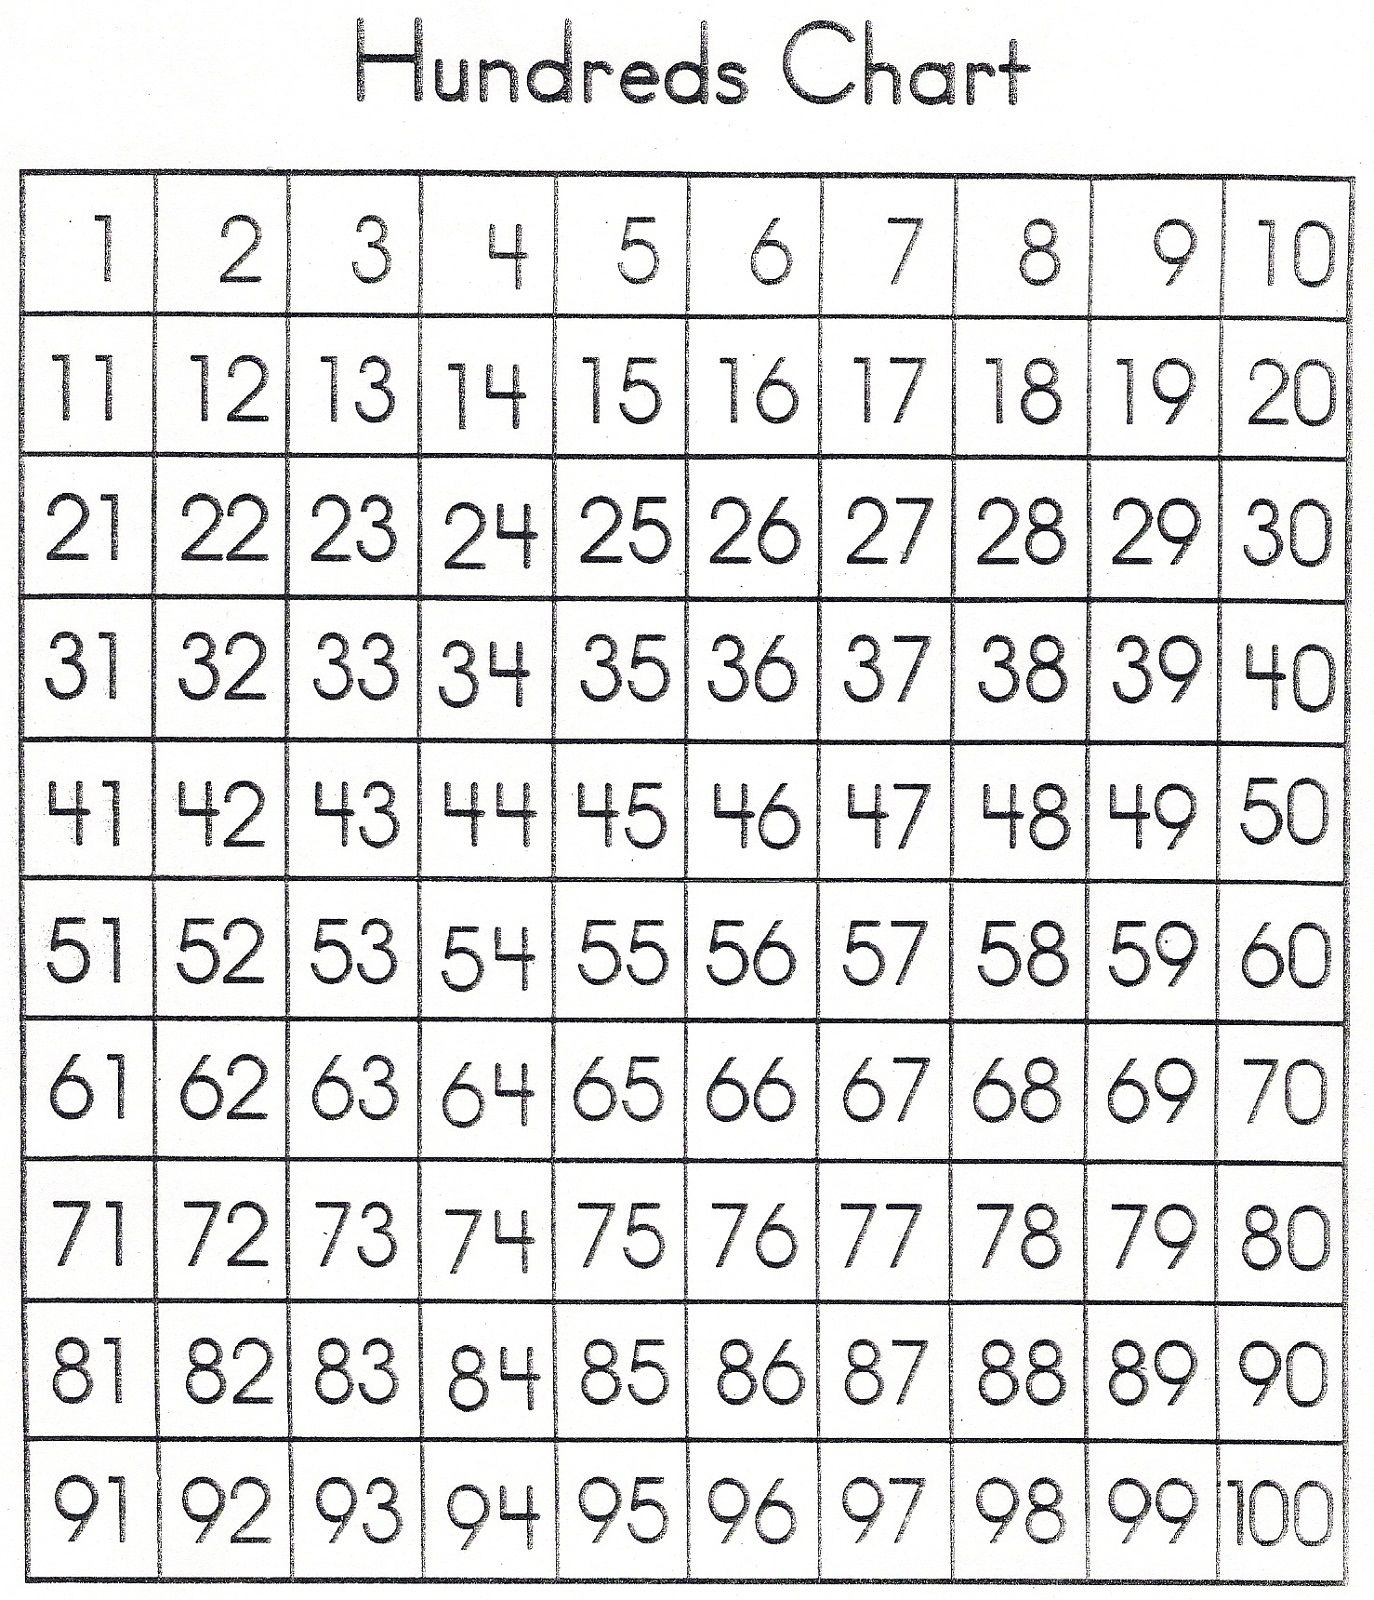 Number Sheet 1-100 To Print   Math Worksheets For Kids   100 Number - Free Printable 100 Chart